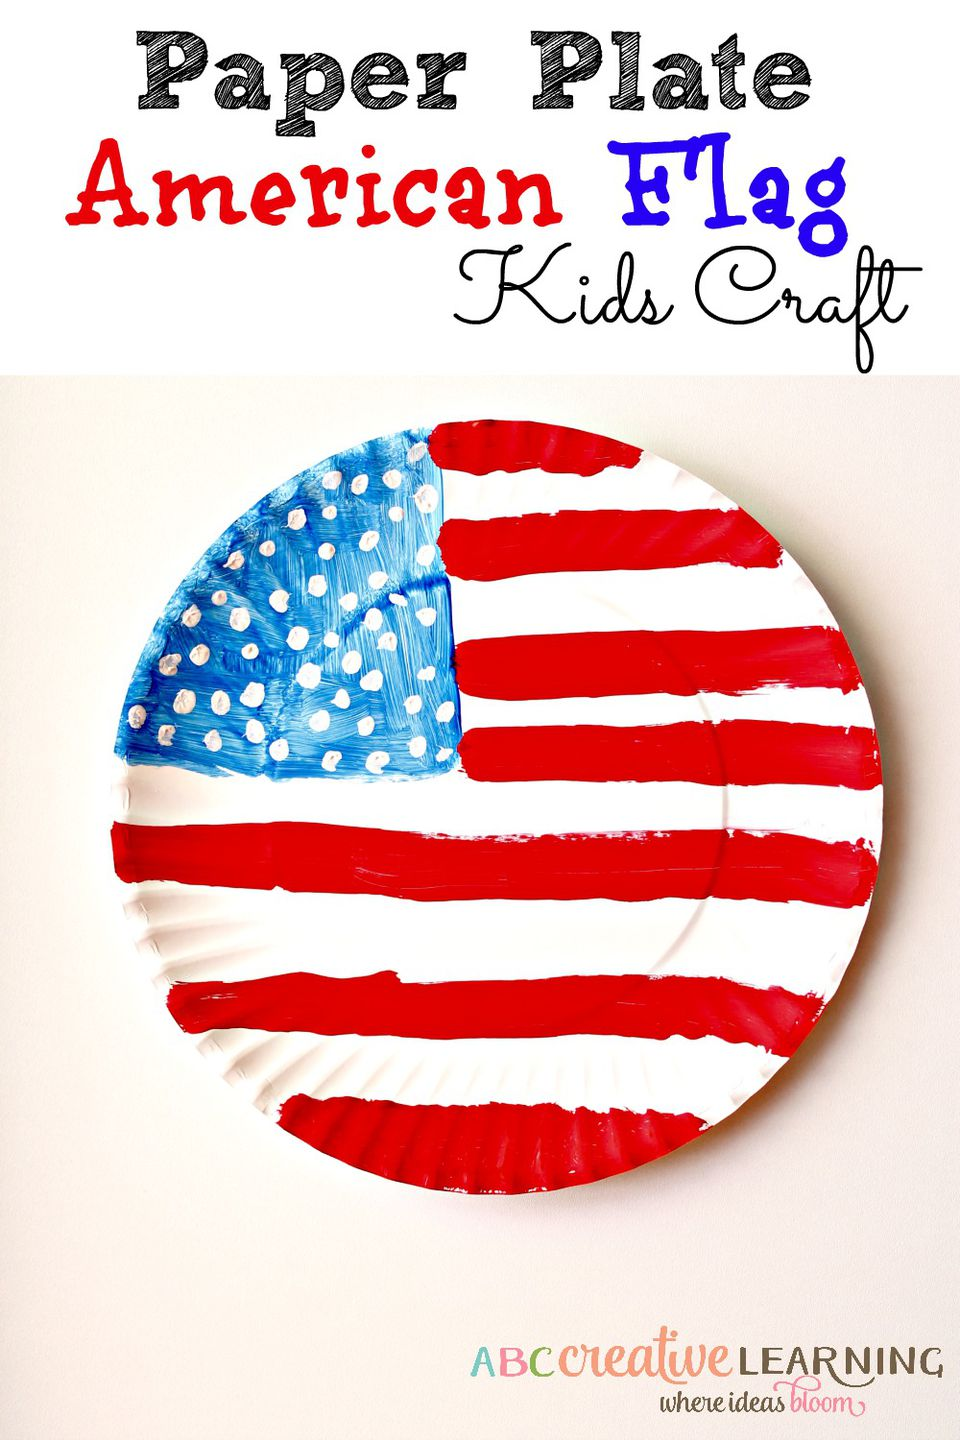 Paper Plate American Flag Craft